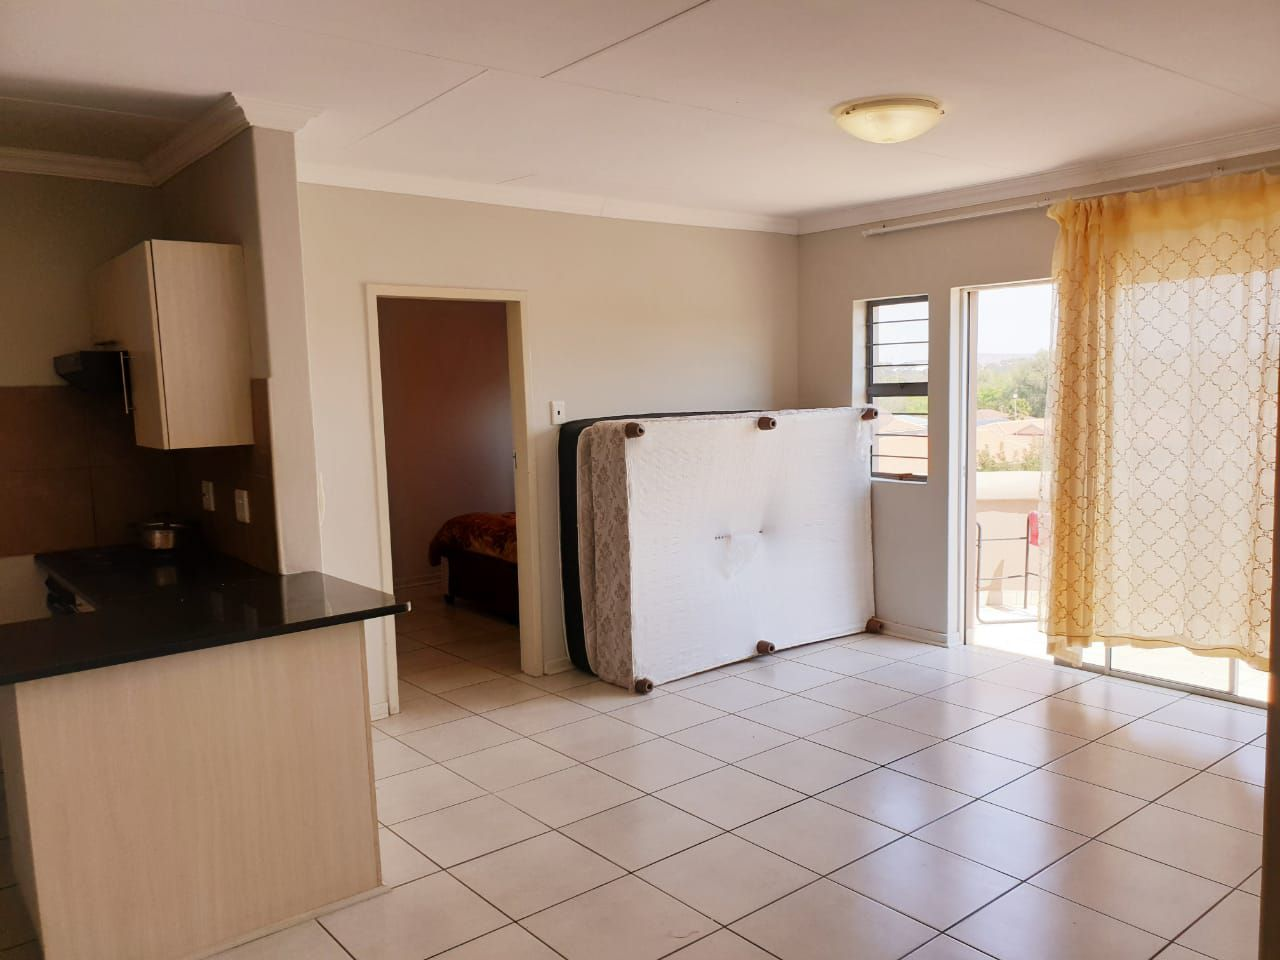 Apartment in Bult - WhatsApp Image 2019-09-17 at 12.30.09 (2).jpeg